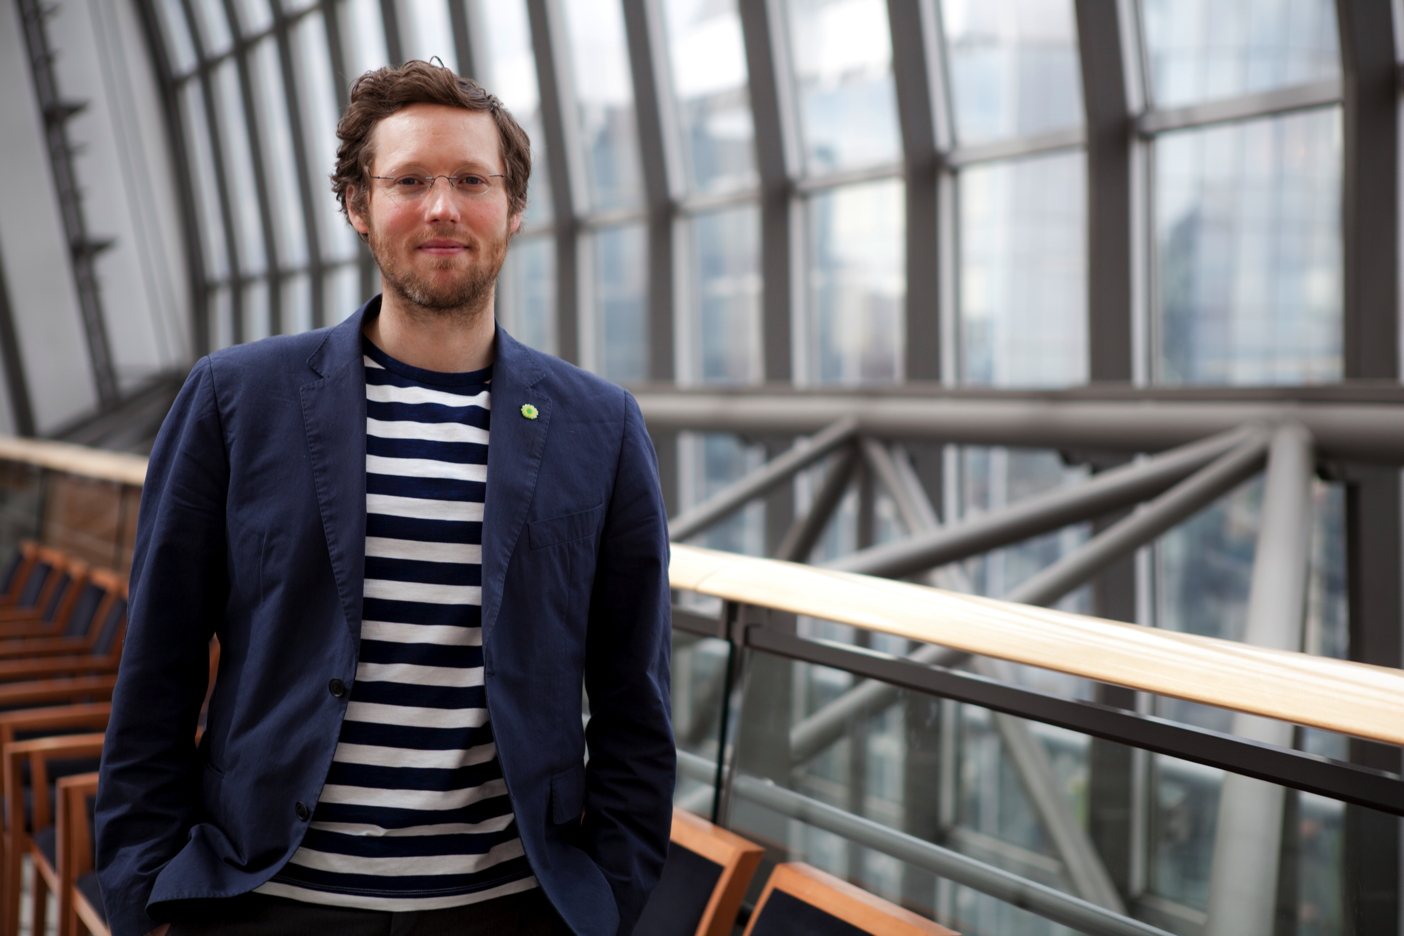 Jan Phillip Albrecht, a 30-year-old German MEP, is spearheading the lead committee proposal amending the data reform legislation.